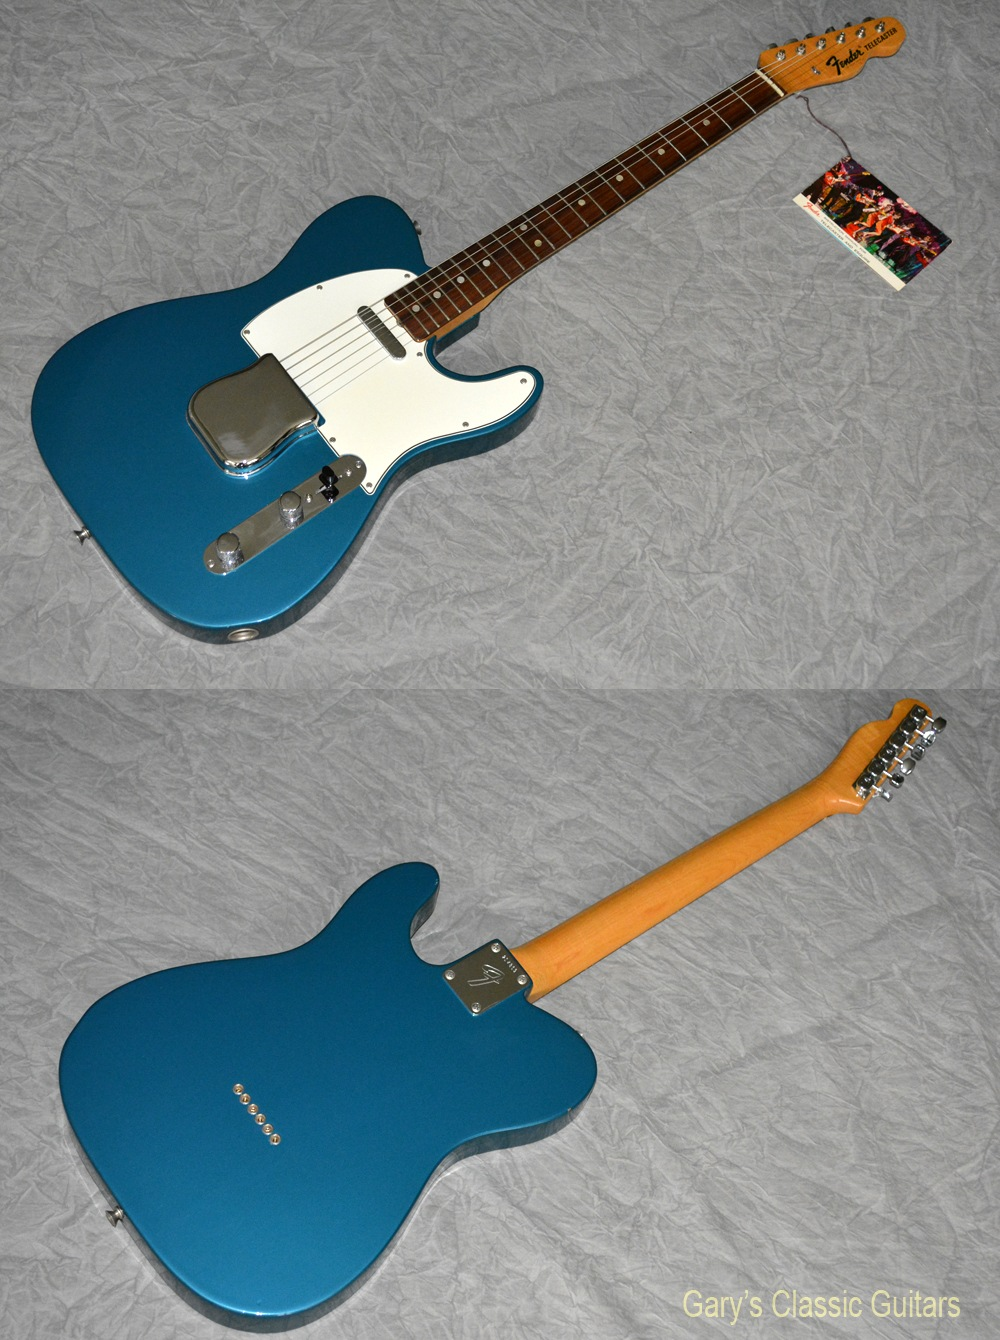 1968 fender telecaster lake placid blue fee0738 garys classic guitars vintage guitars llc. Black Bedroom Furniture Sets. Home Design Ideas